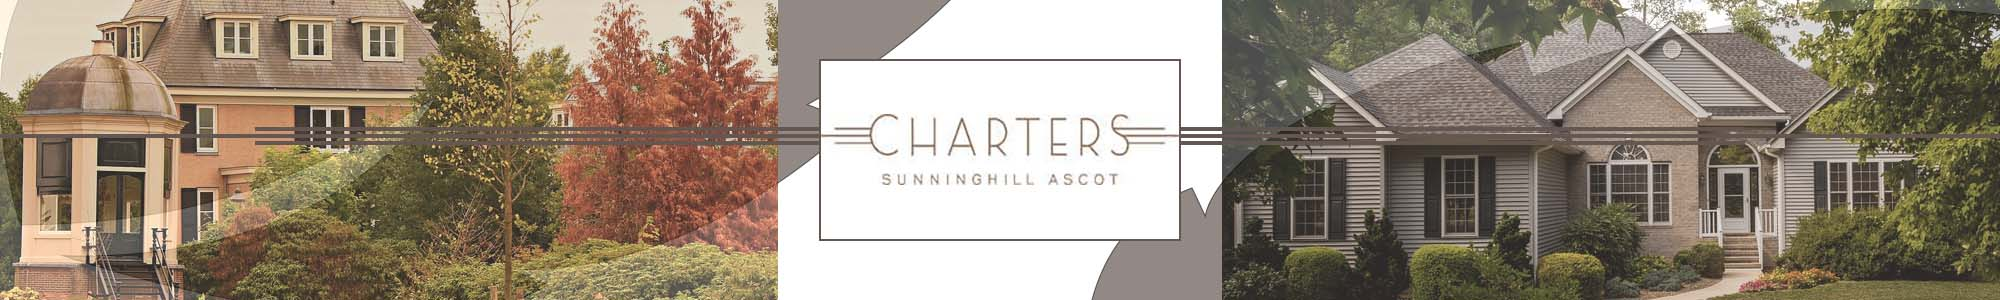 Sunninghill and Ascot Property Company